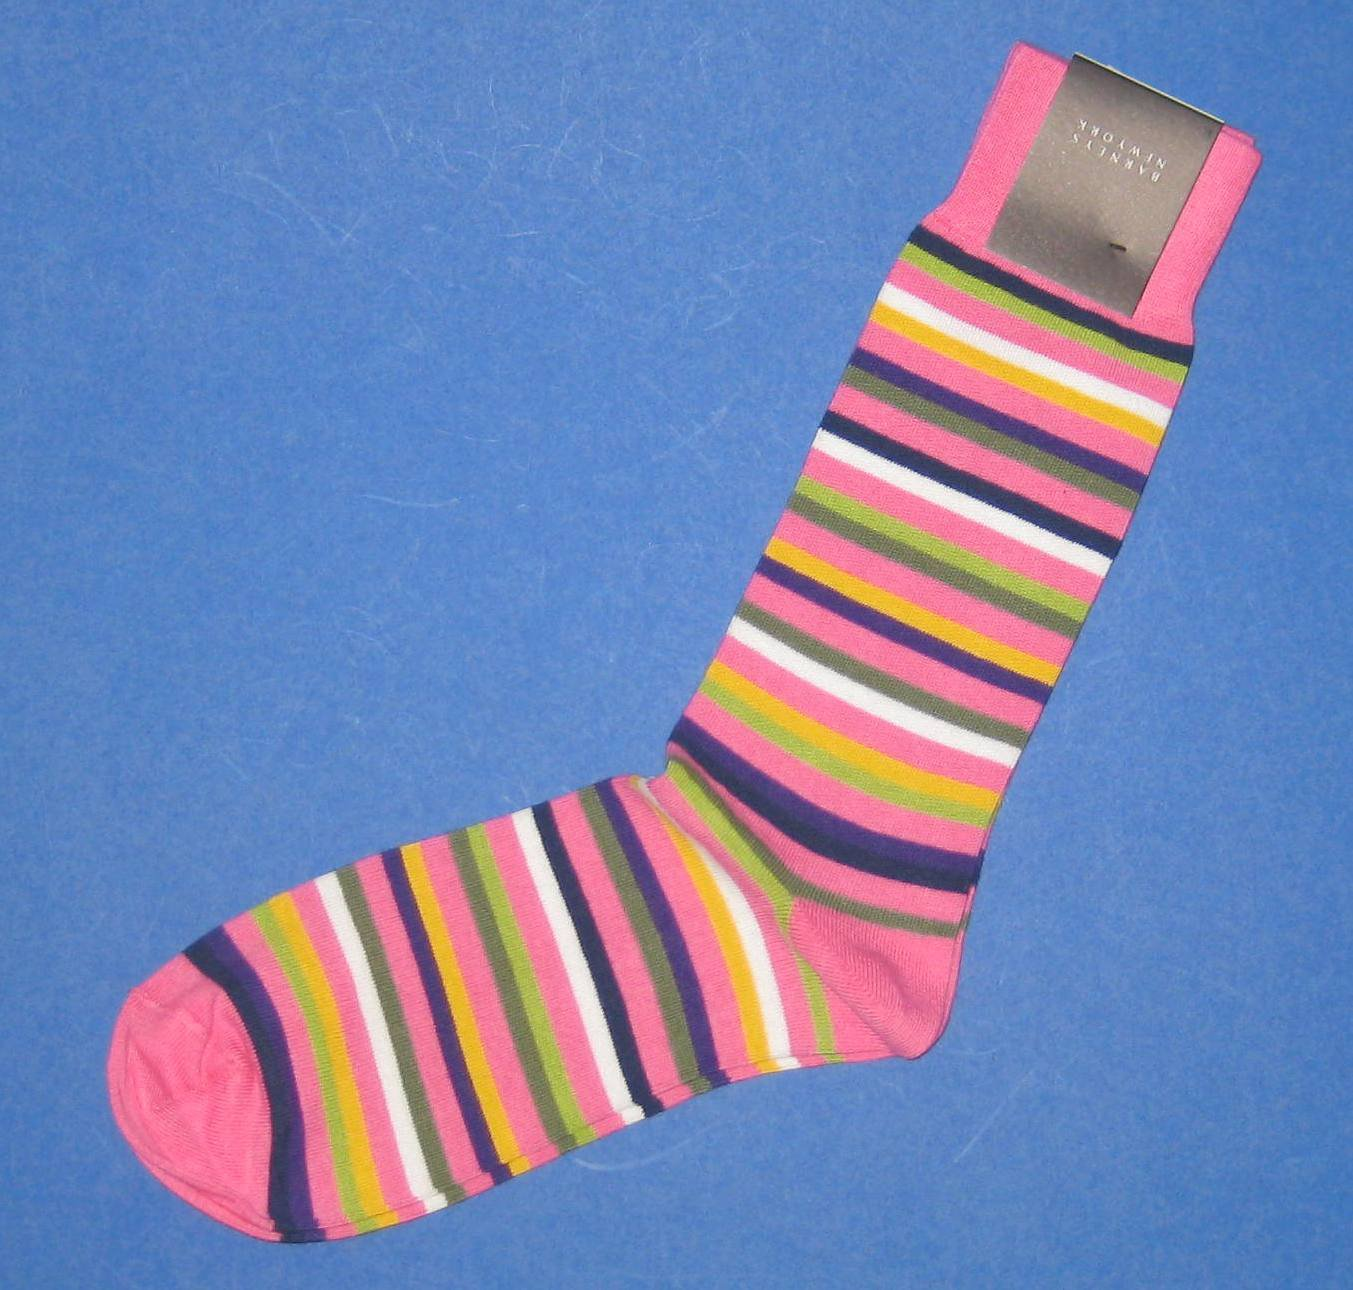 NWT Barneys New York Italian Made Pink Multi Colored Striped Cotton Knit Socks